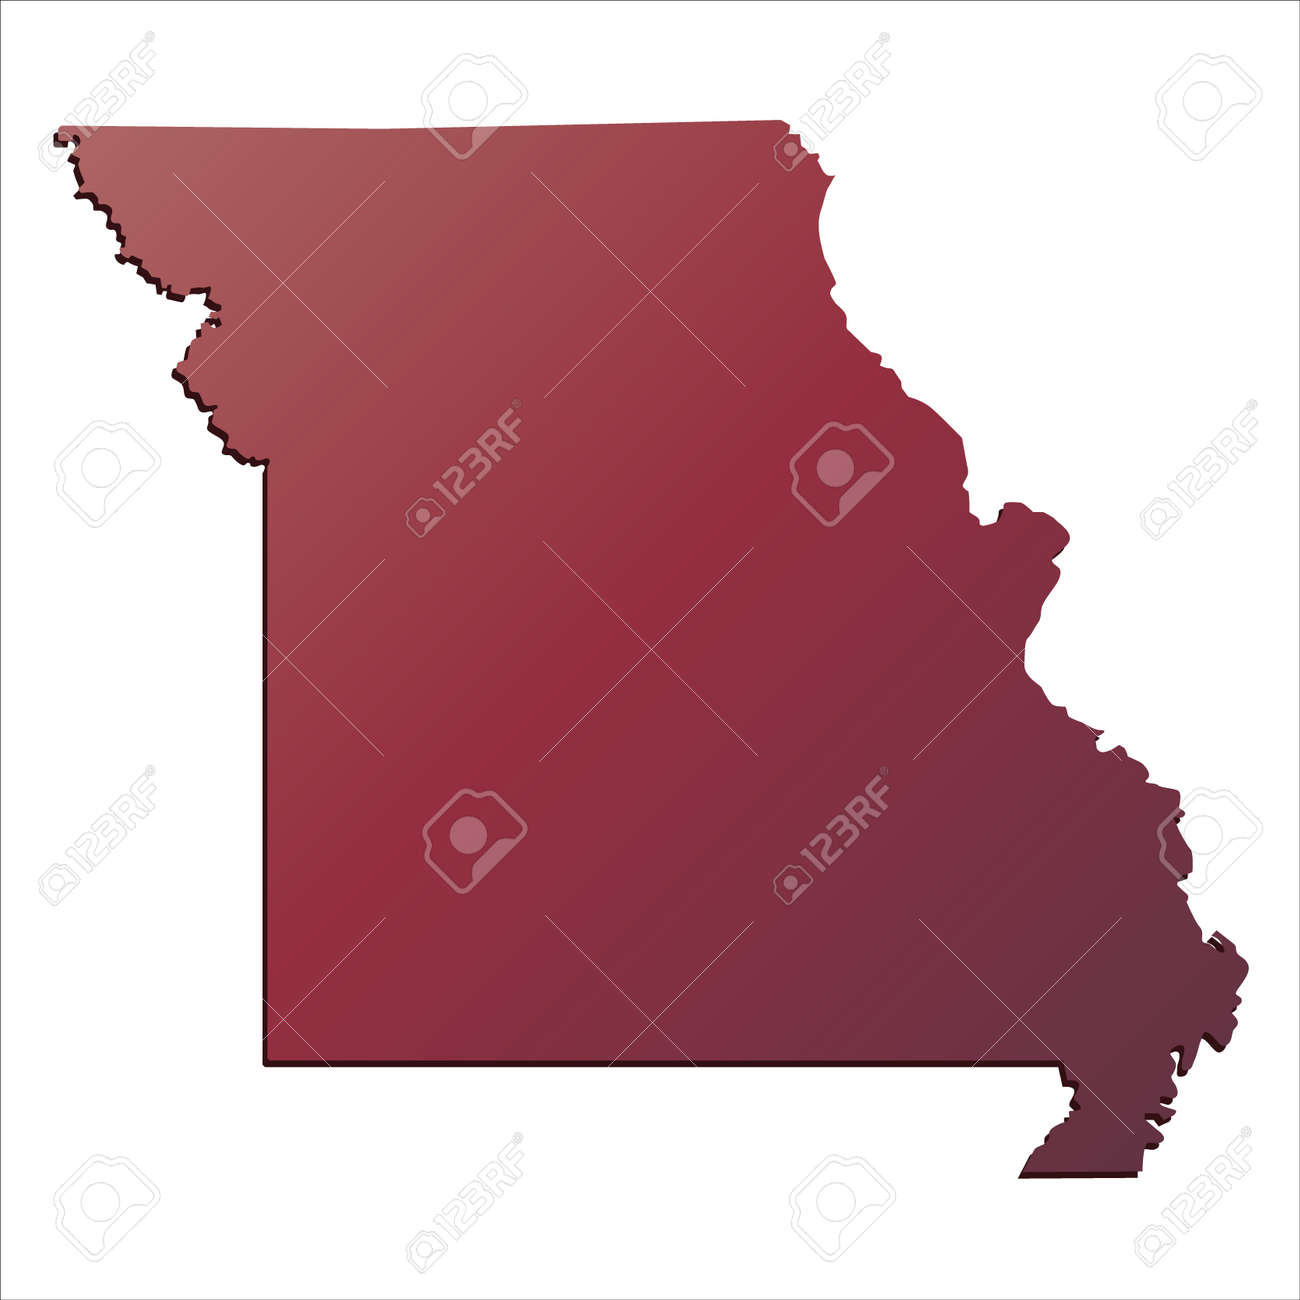 Autumn Gradient Missouri  USA  State Map With Shadow Royalty Free     Autumn Gradient Missouri  USA  State map with shadow Stock Vector   71675891